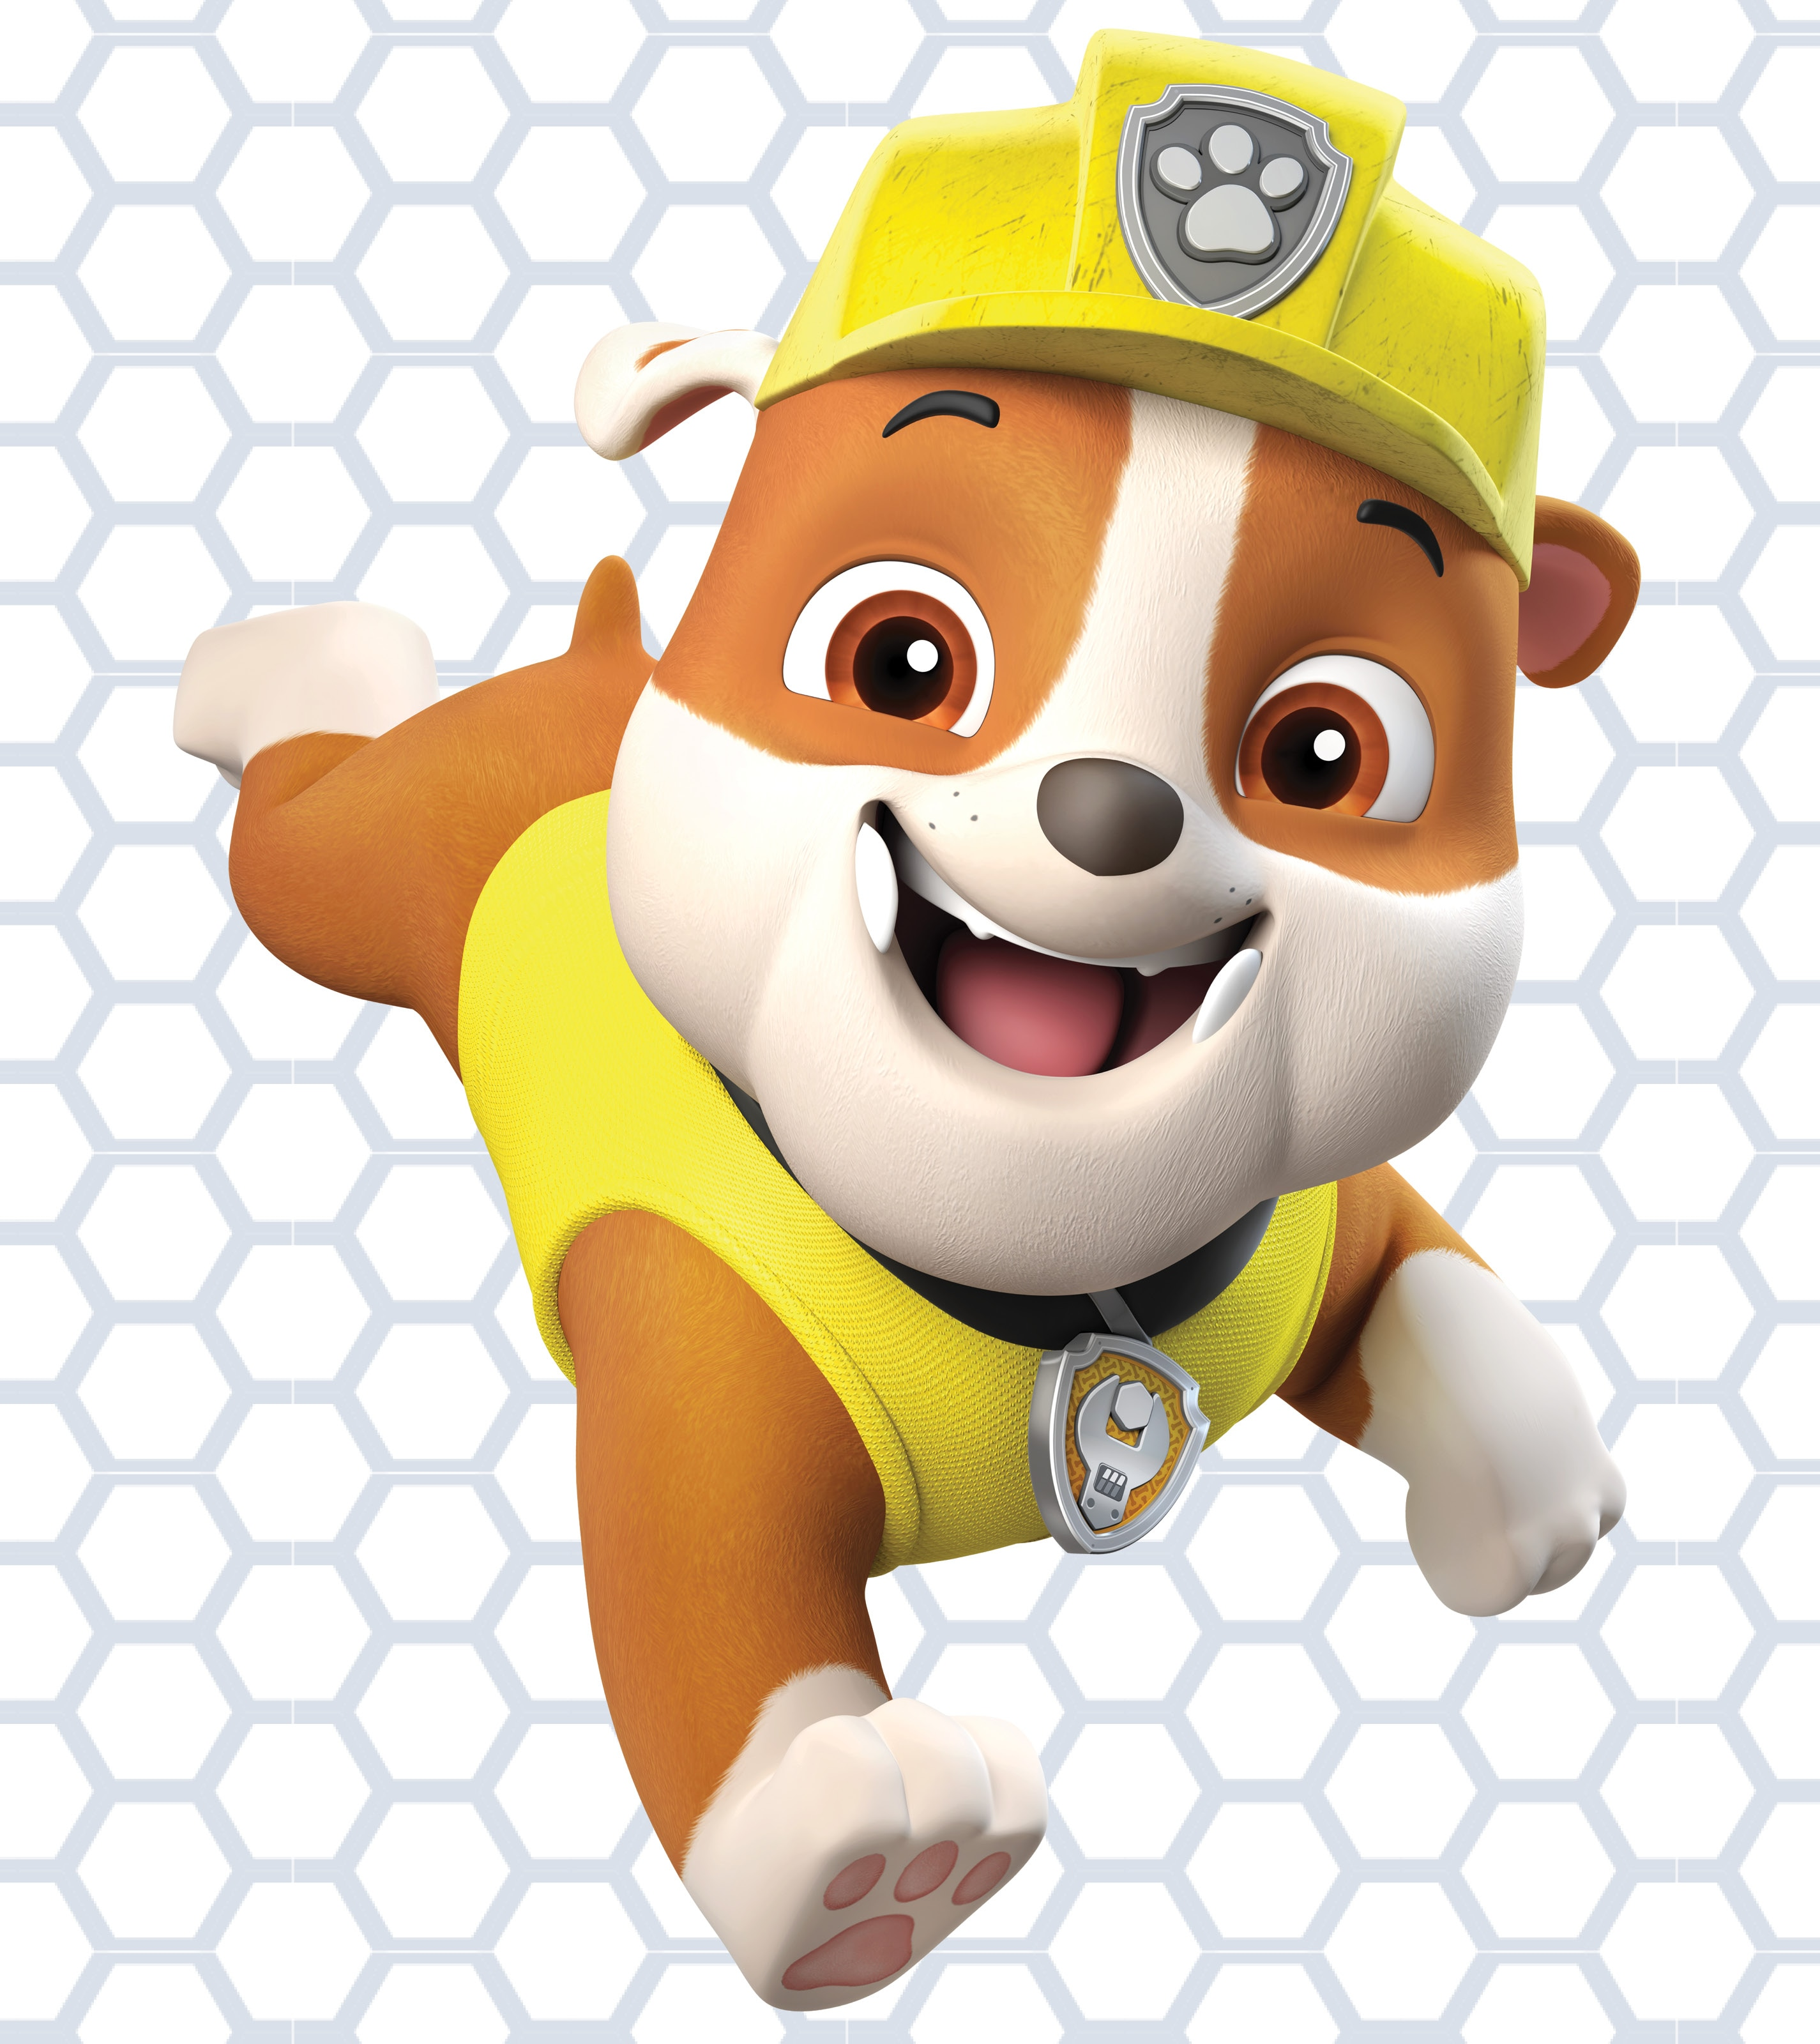 PAW Patrol Live! Rubble